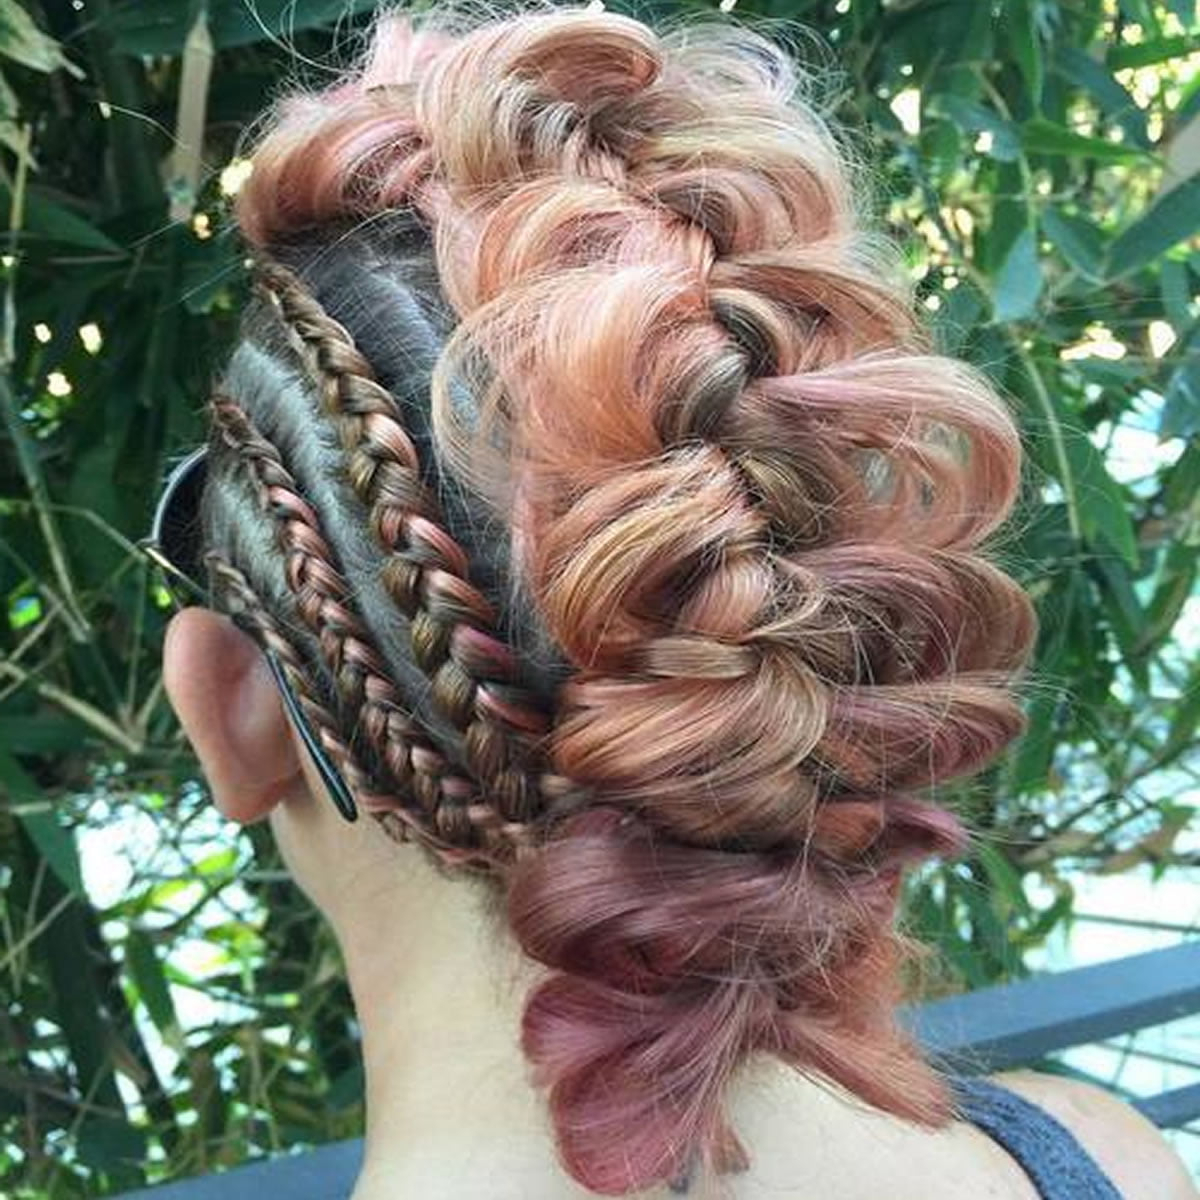 30 Glamorous Braided Mohawk Hairstyles For Girls And Women Throughout Best And Newest Pouf Braided Mohawk Hairstyles (View 14 of 20)